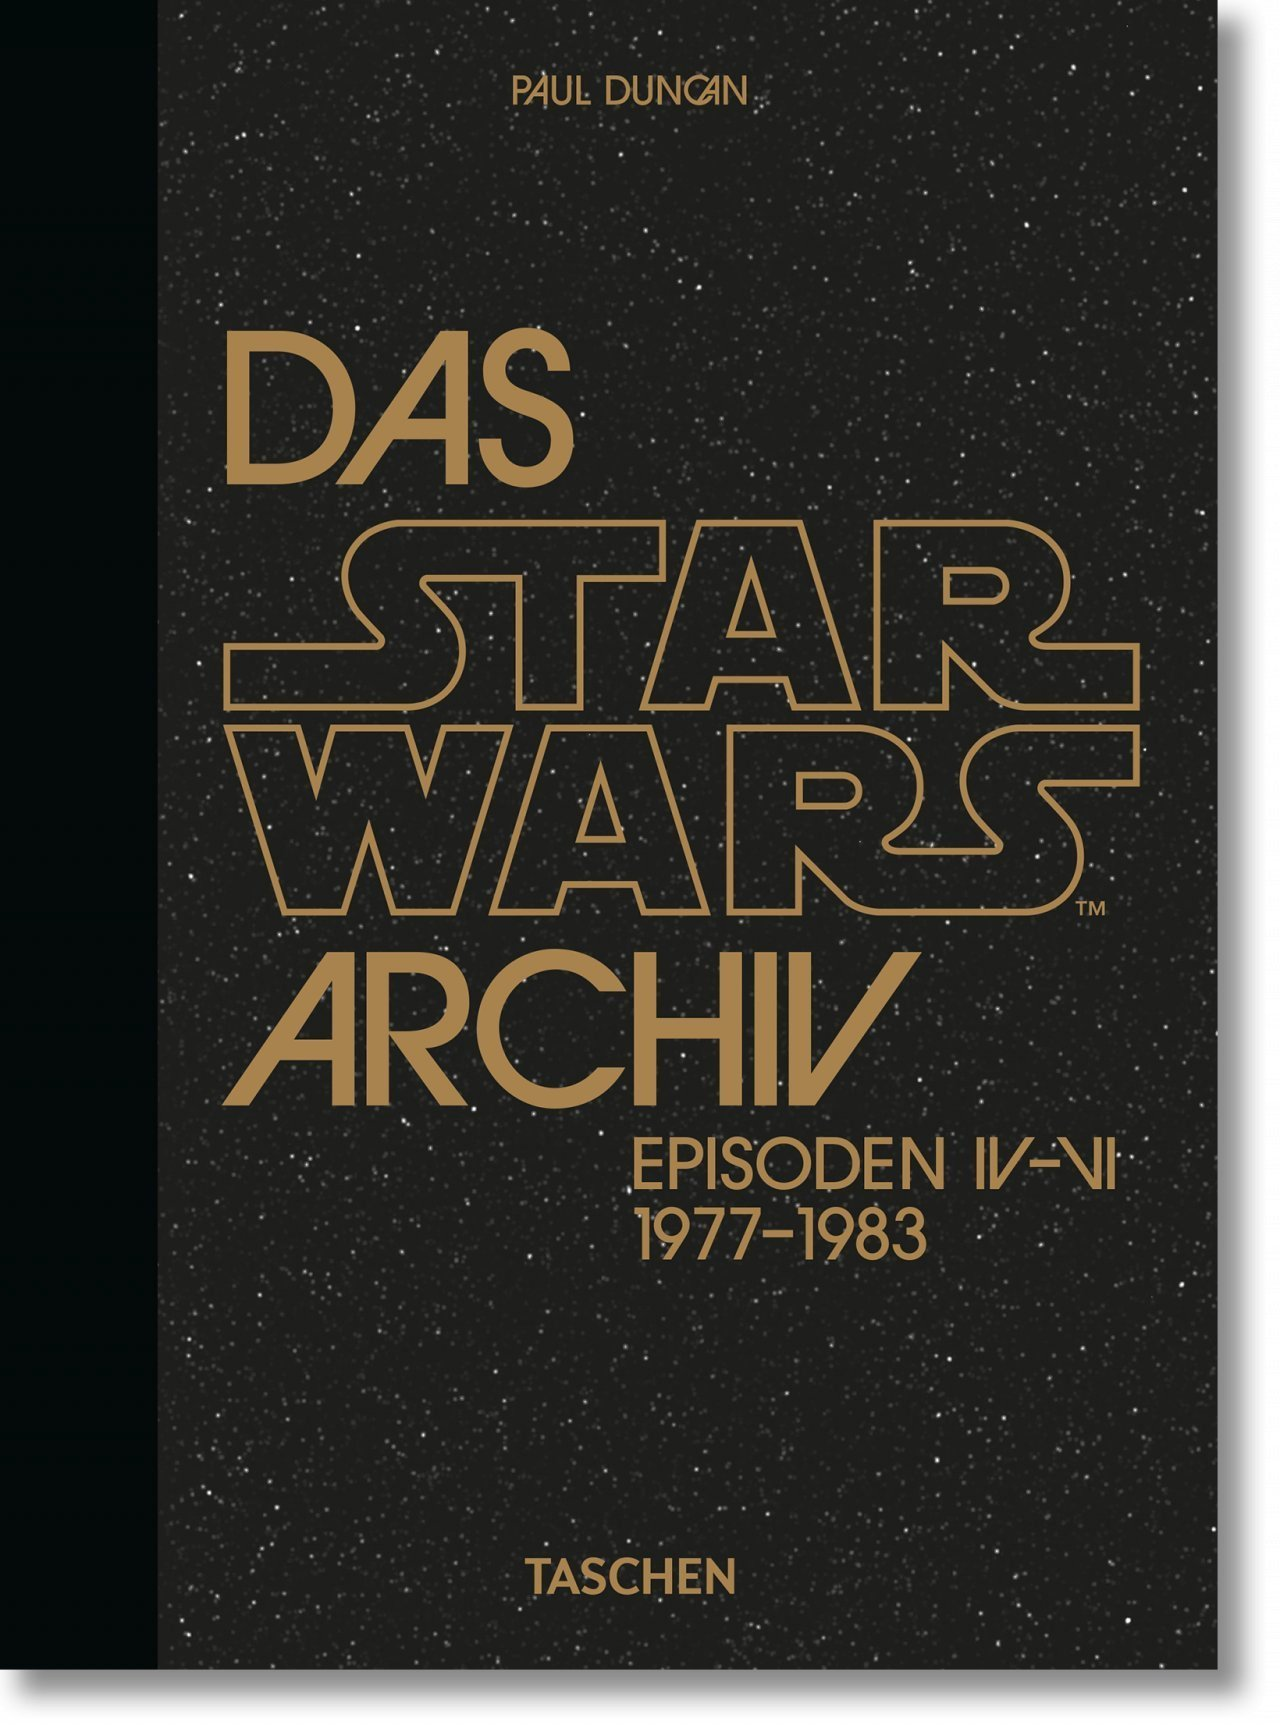 Das Star Wars Archiv: Episoden IV-VI: 1977–1983 - 40th Anniversary Edition (18.10.2020)